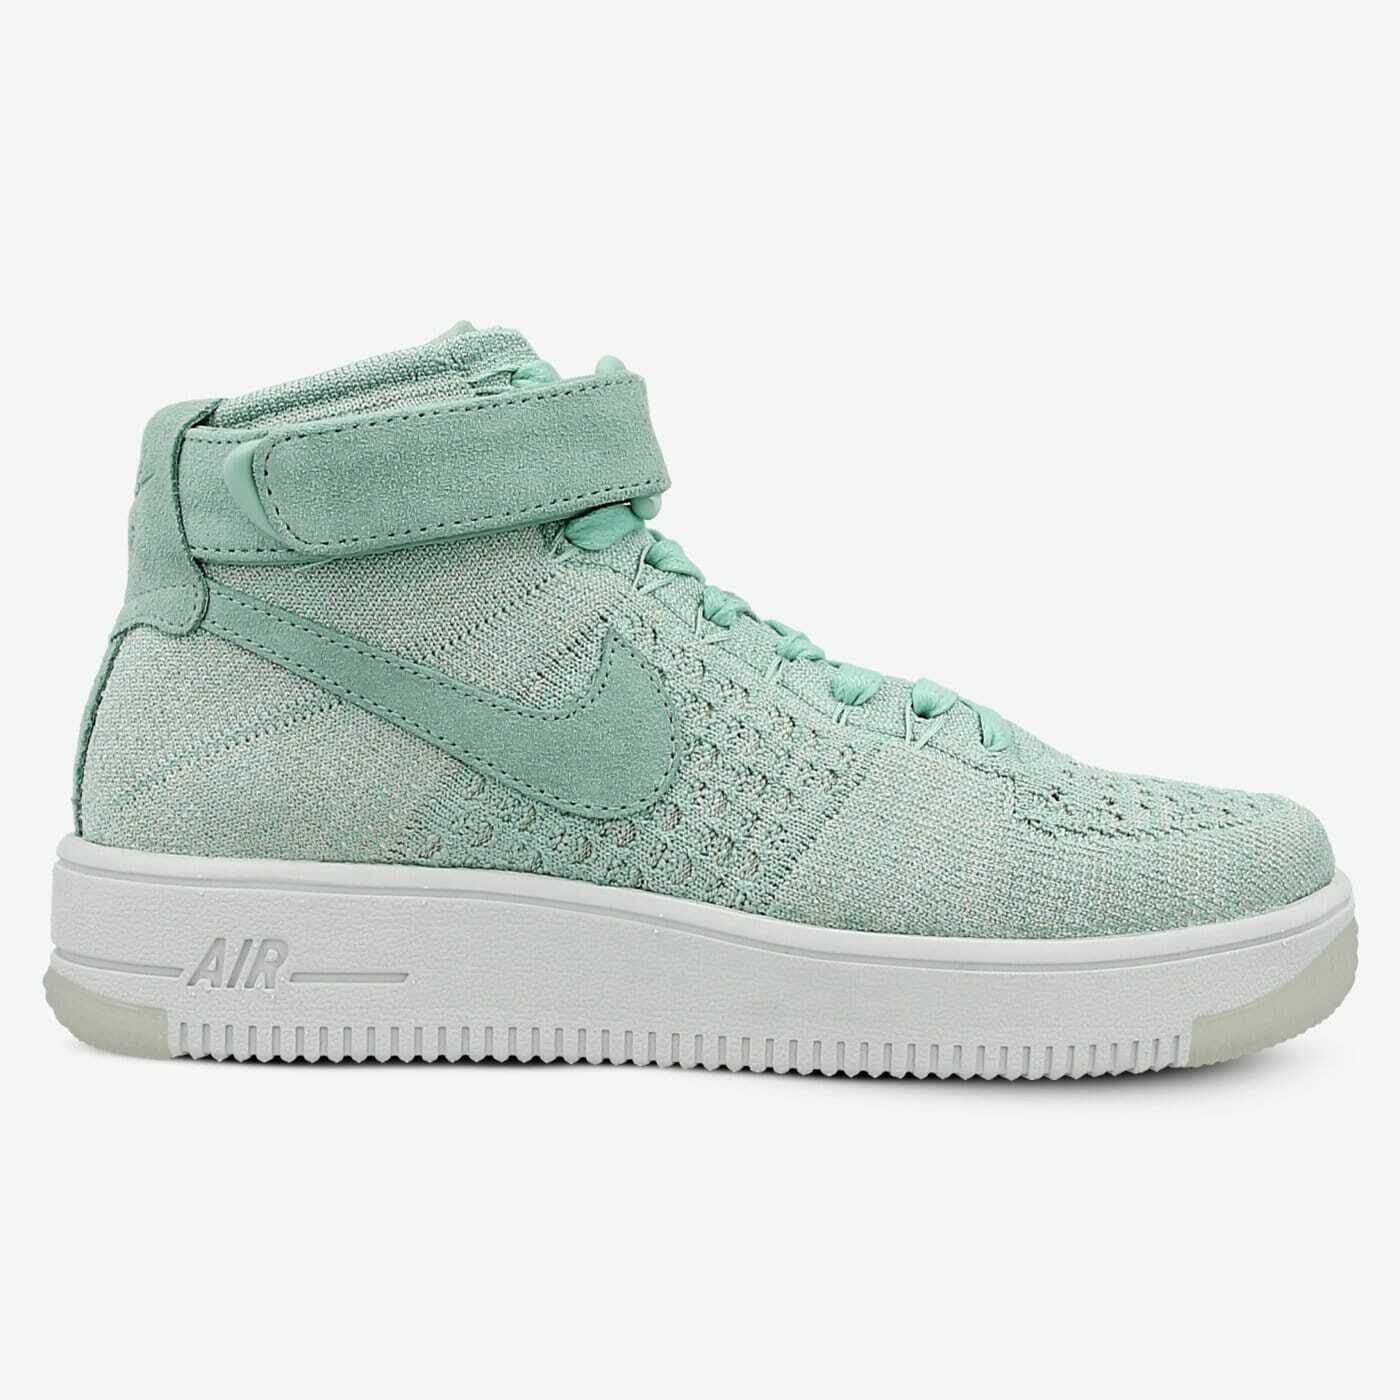 New Womens Nike Air Force 1 Flyknit UK Size 5    Mint Green Trainers